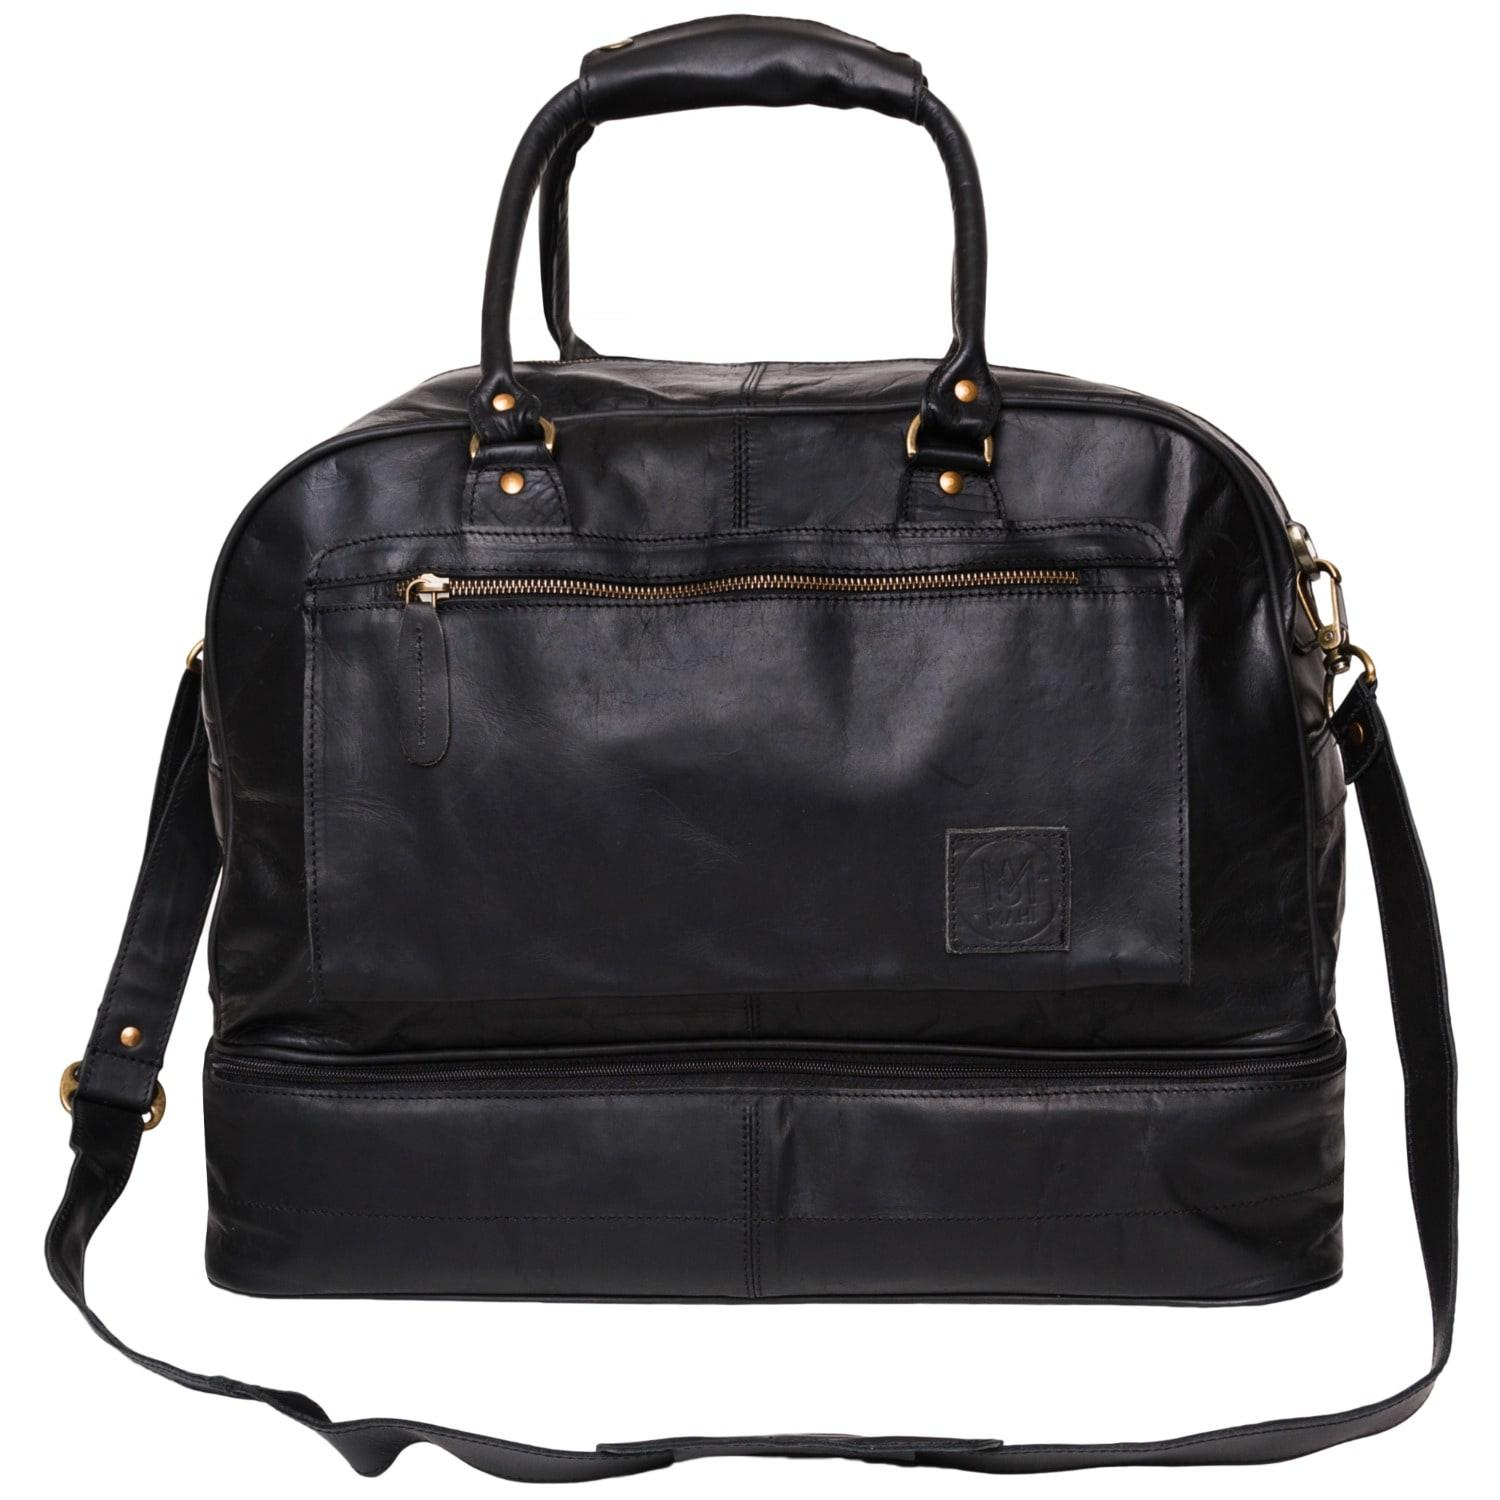 8350ca98b8492a Mahi leather Large Leather Raleigh Holdall Overnight/weekend Bag With Under  Compartment In Black .